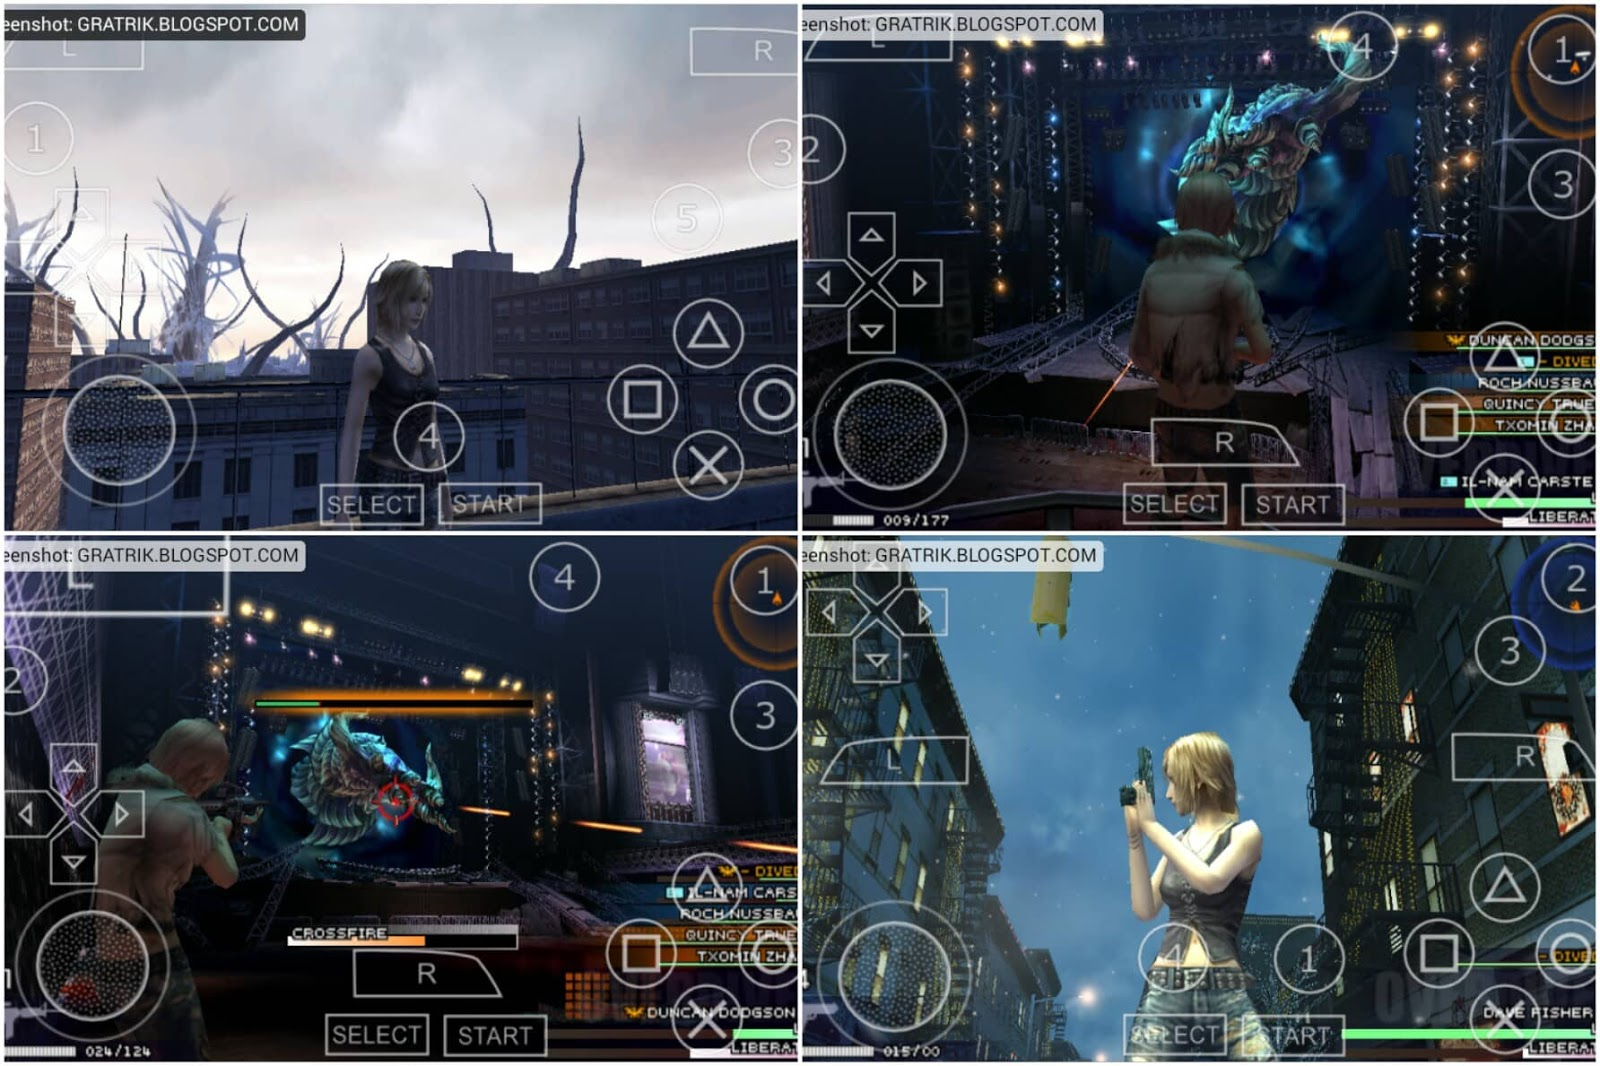 free download game psp iso cso